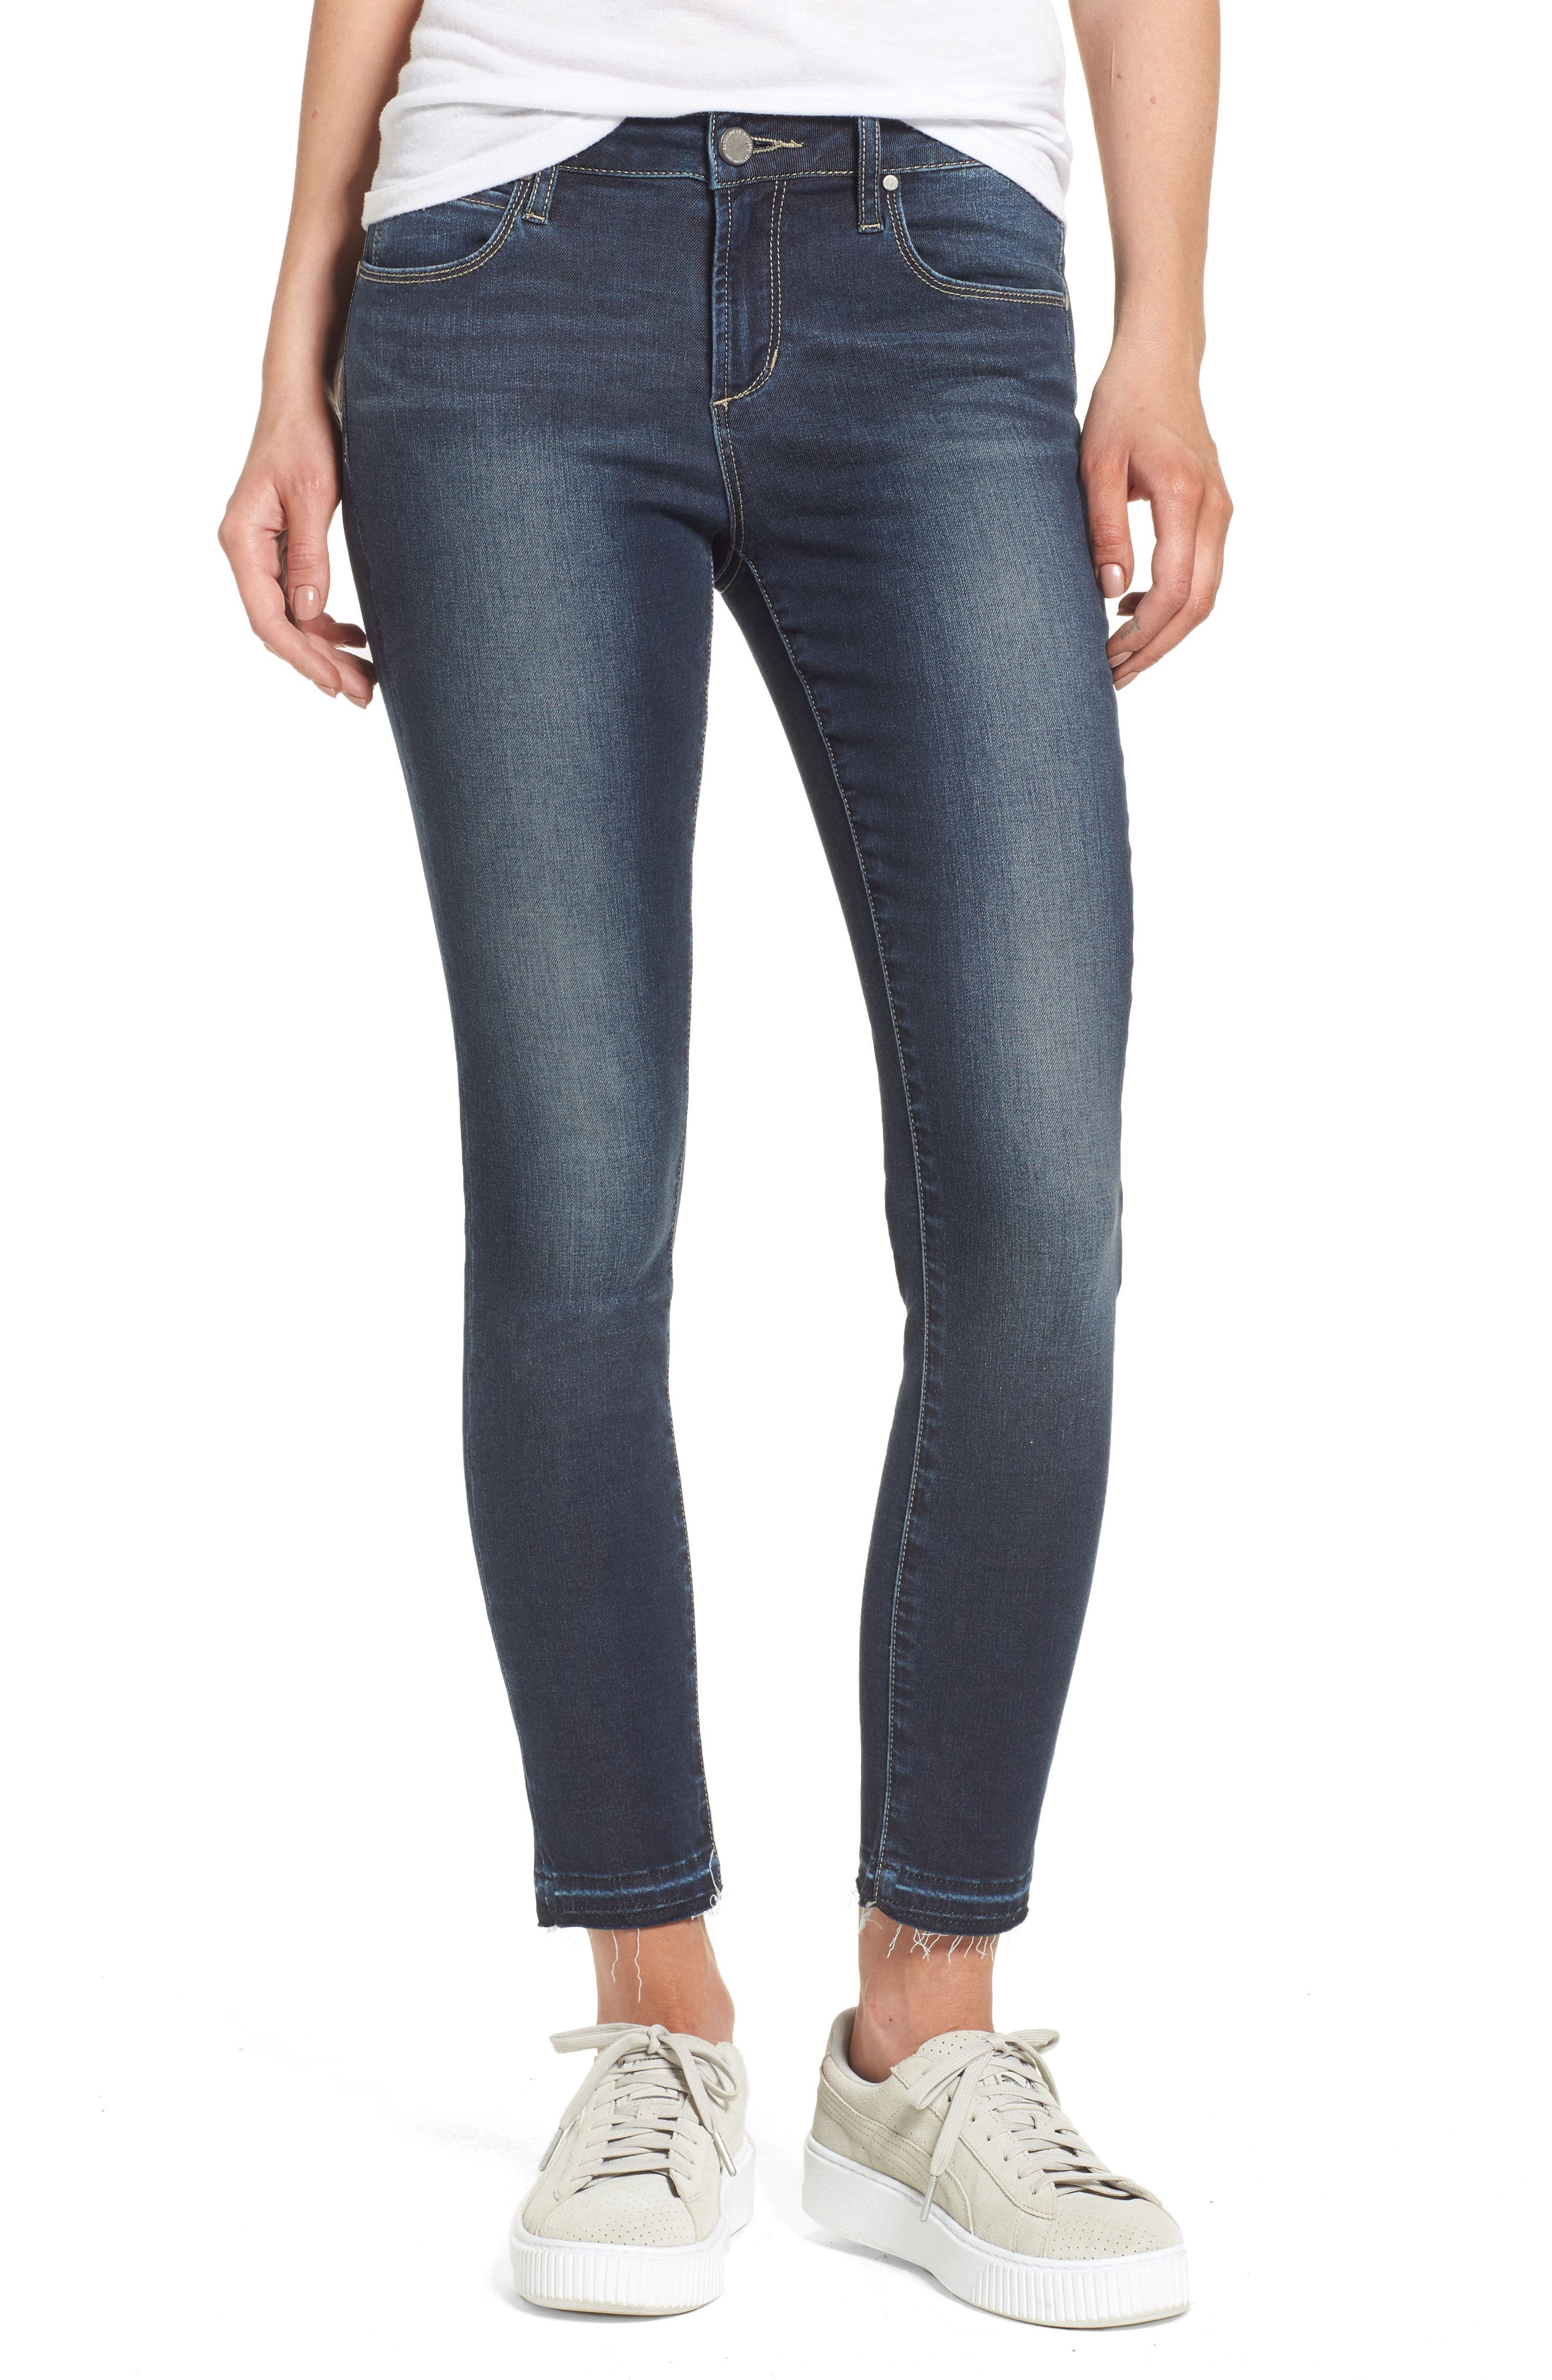 Alternate Image 1 Selected - Articles of Society Carly Release Hem Crop Skinny Jeans (Blue Fly)